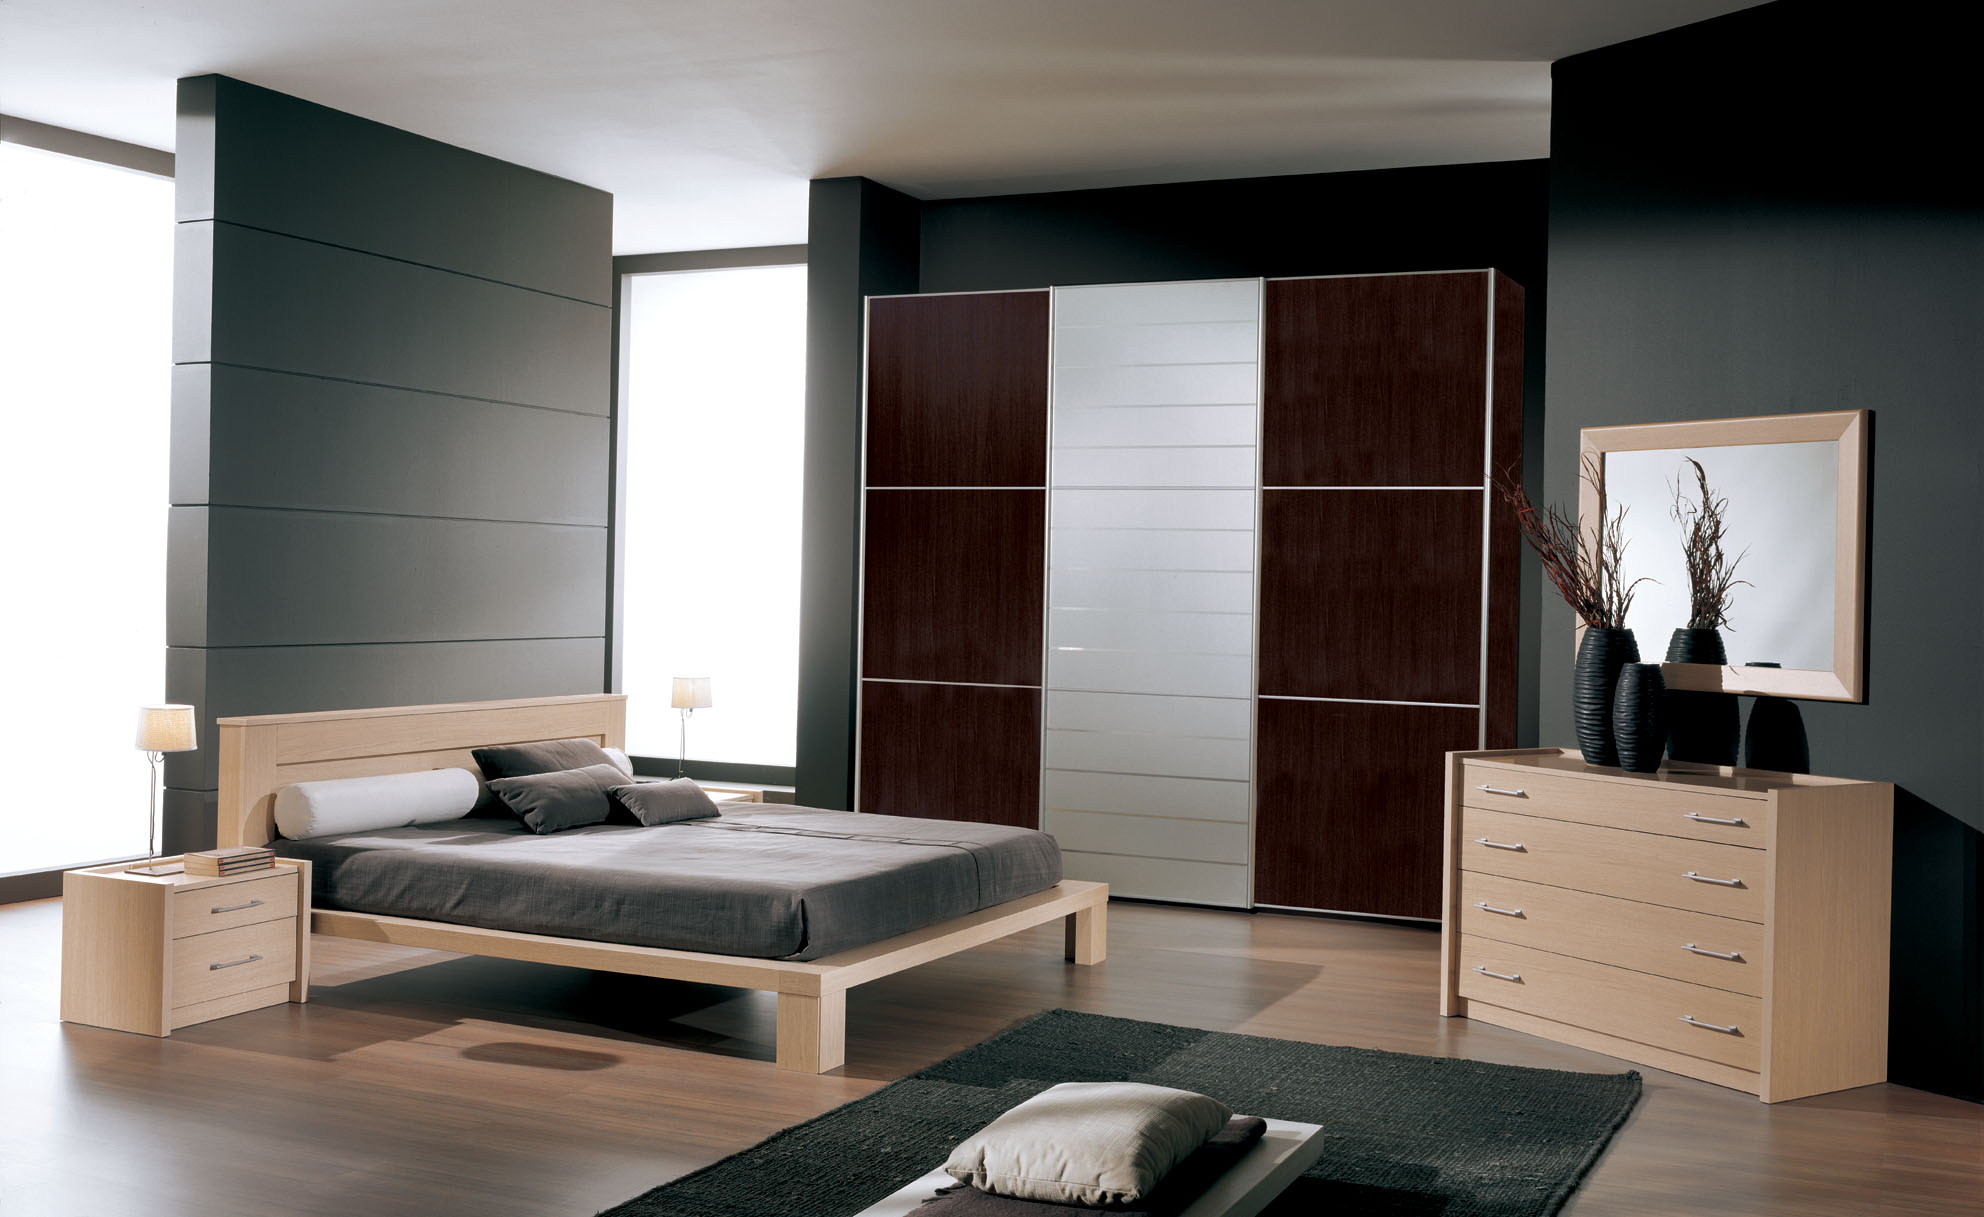 Storage Ideas For Small Bedrooms Efficient Way To Store The Things : Witching Lavish Small Bedroom Storage Furnitures